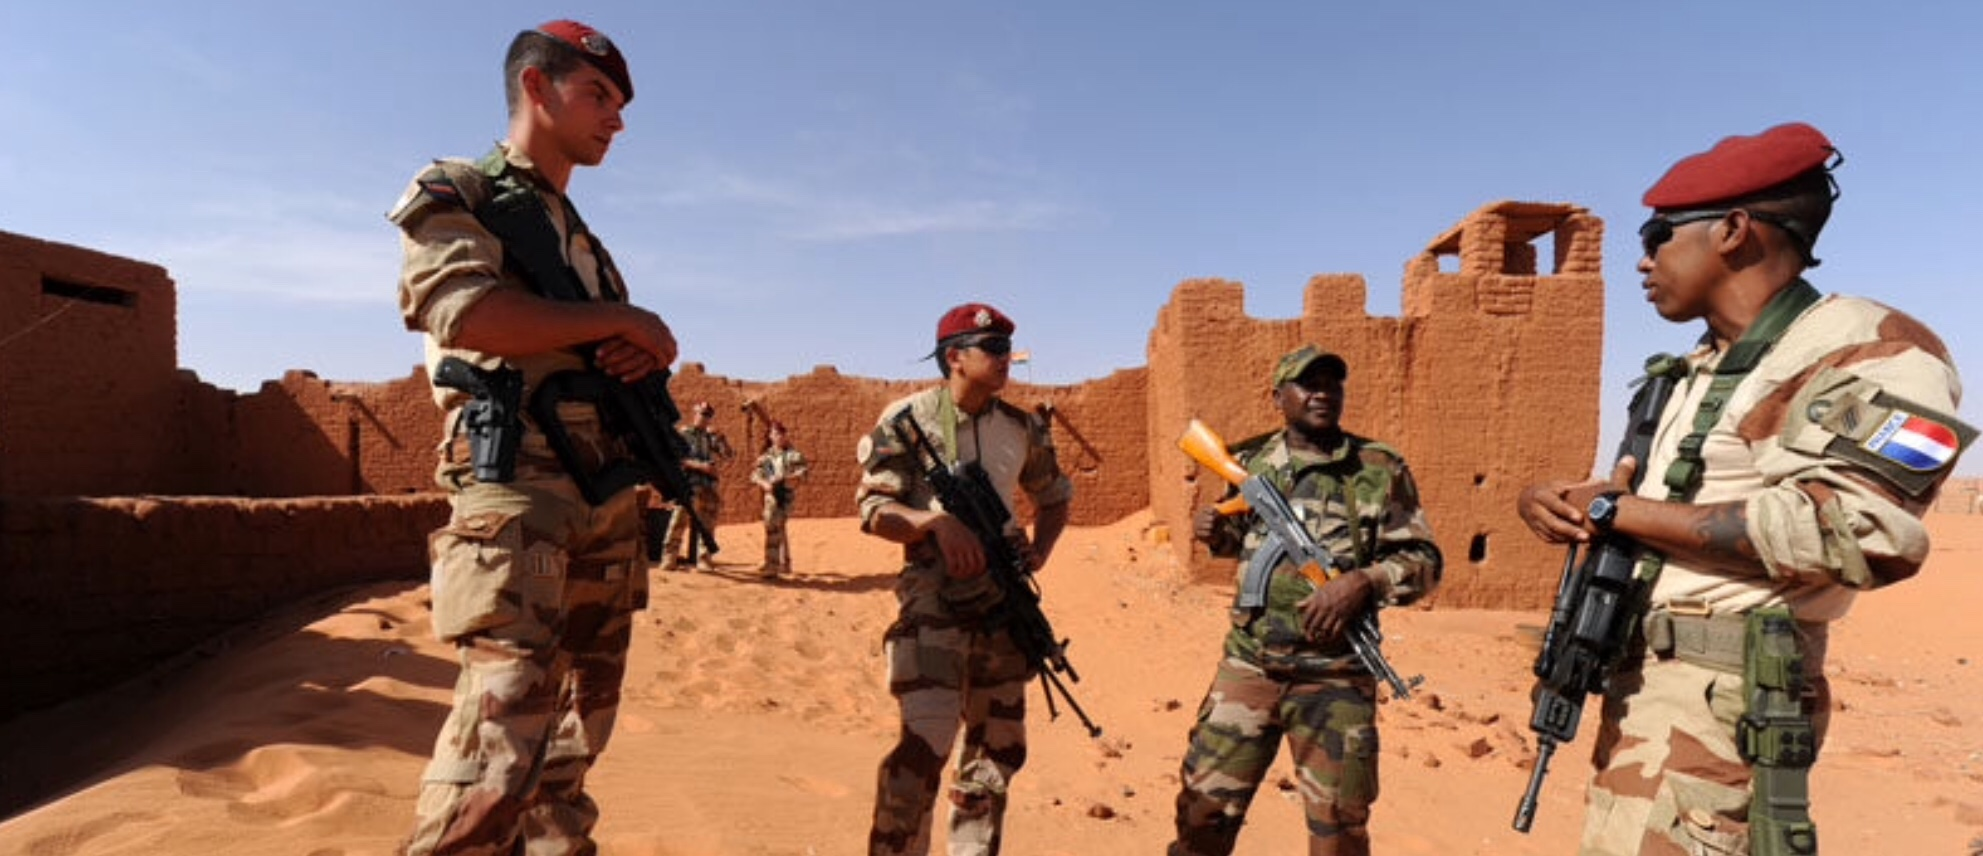 SAHEL: Chad to deploy thousand troops